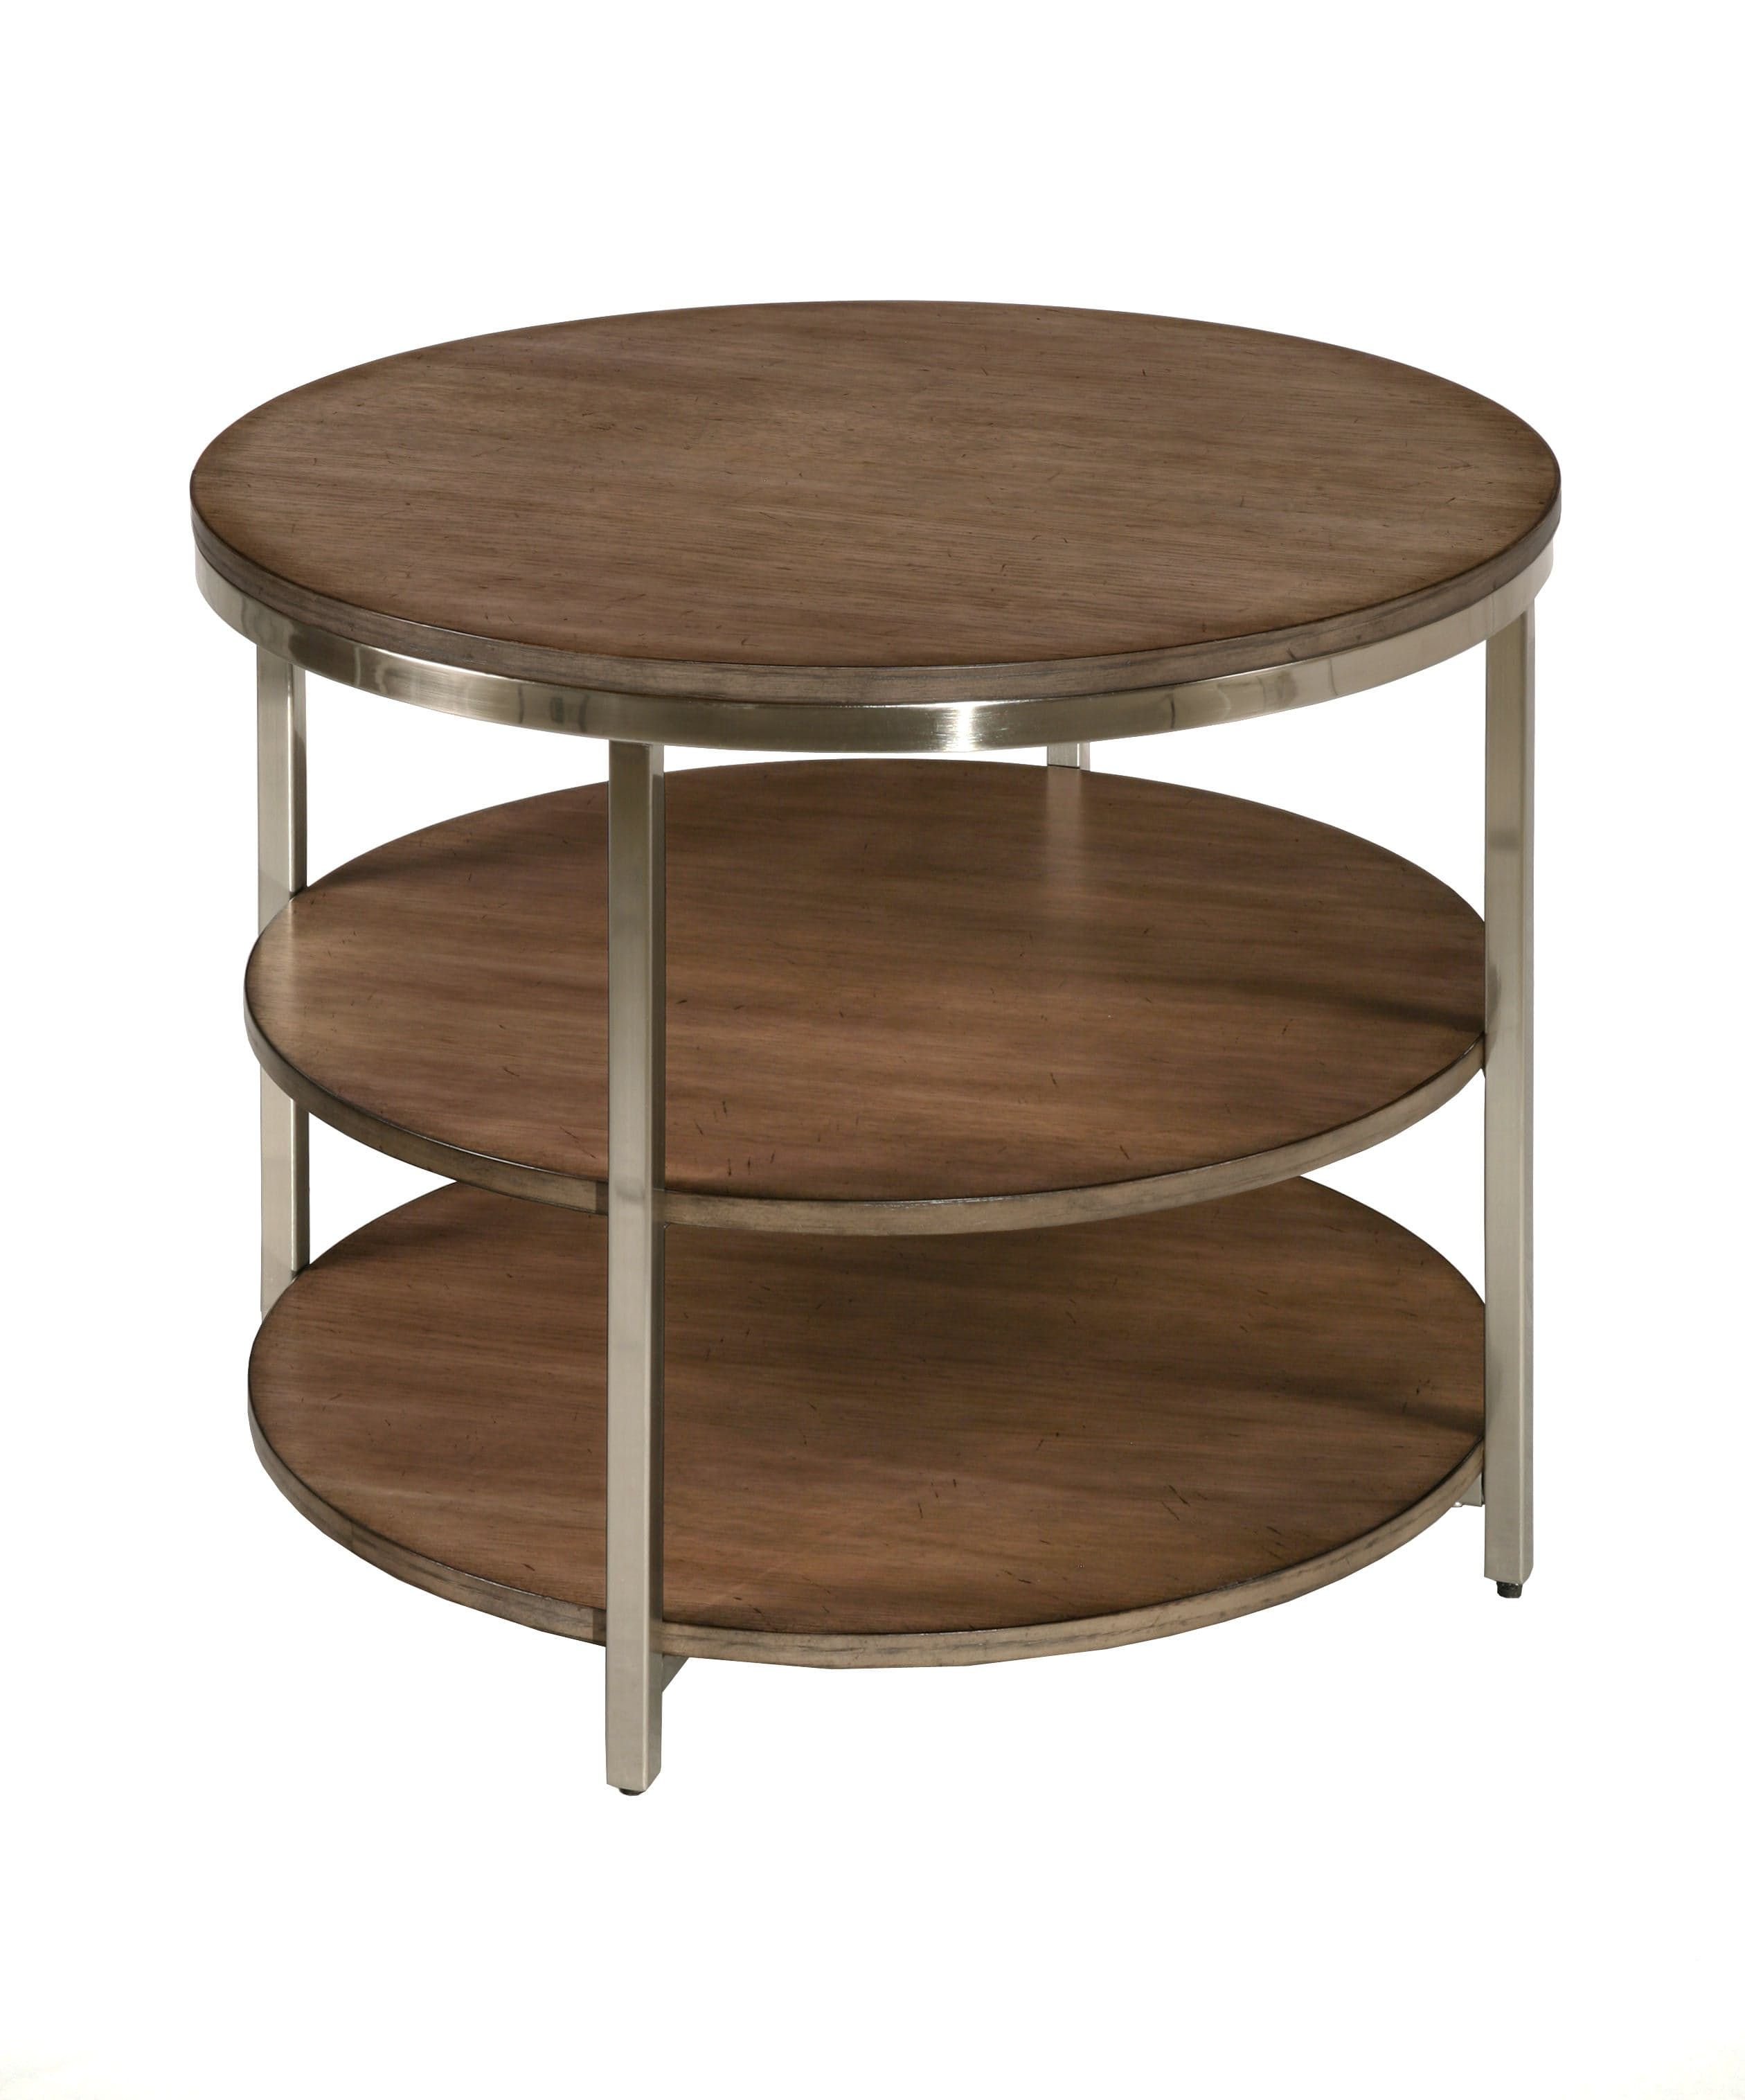 This Is 26 Inches In Diameter Could Go Between The Two Couches Table End Tables Coffee Table